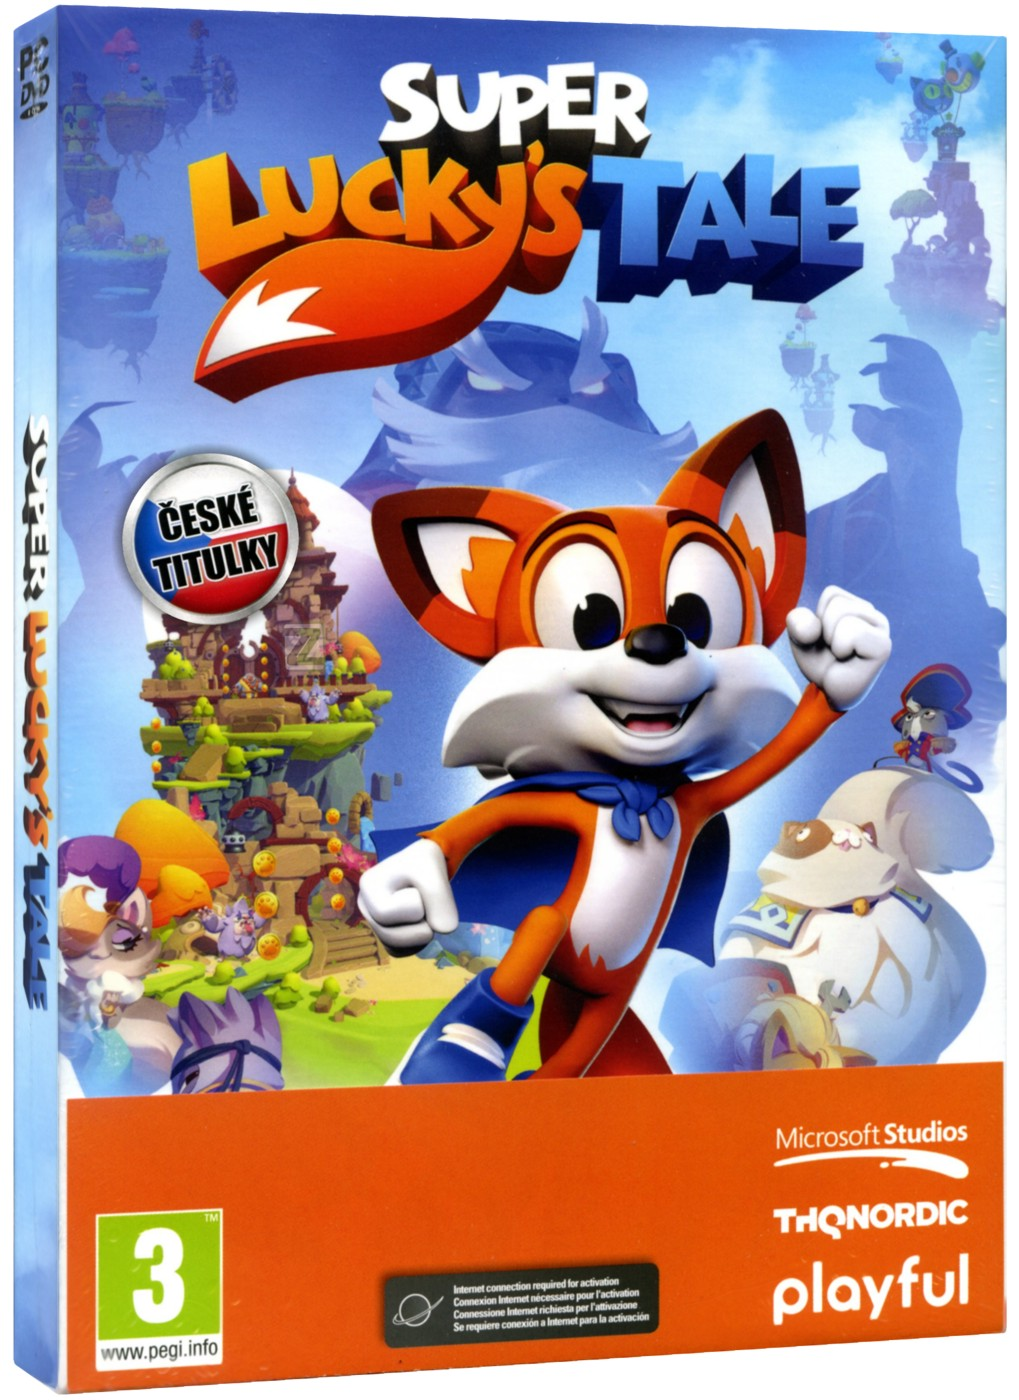 Super Luckys Tale - PC